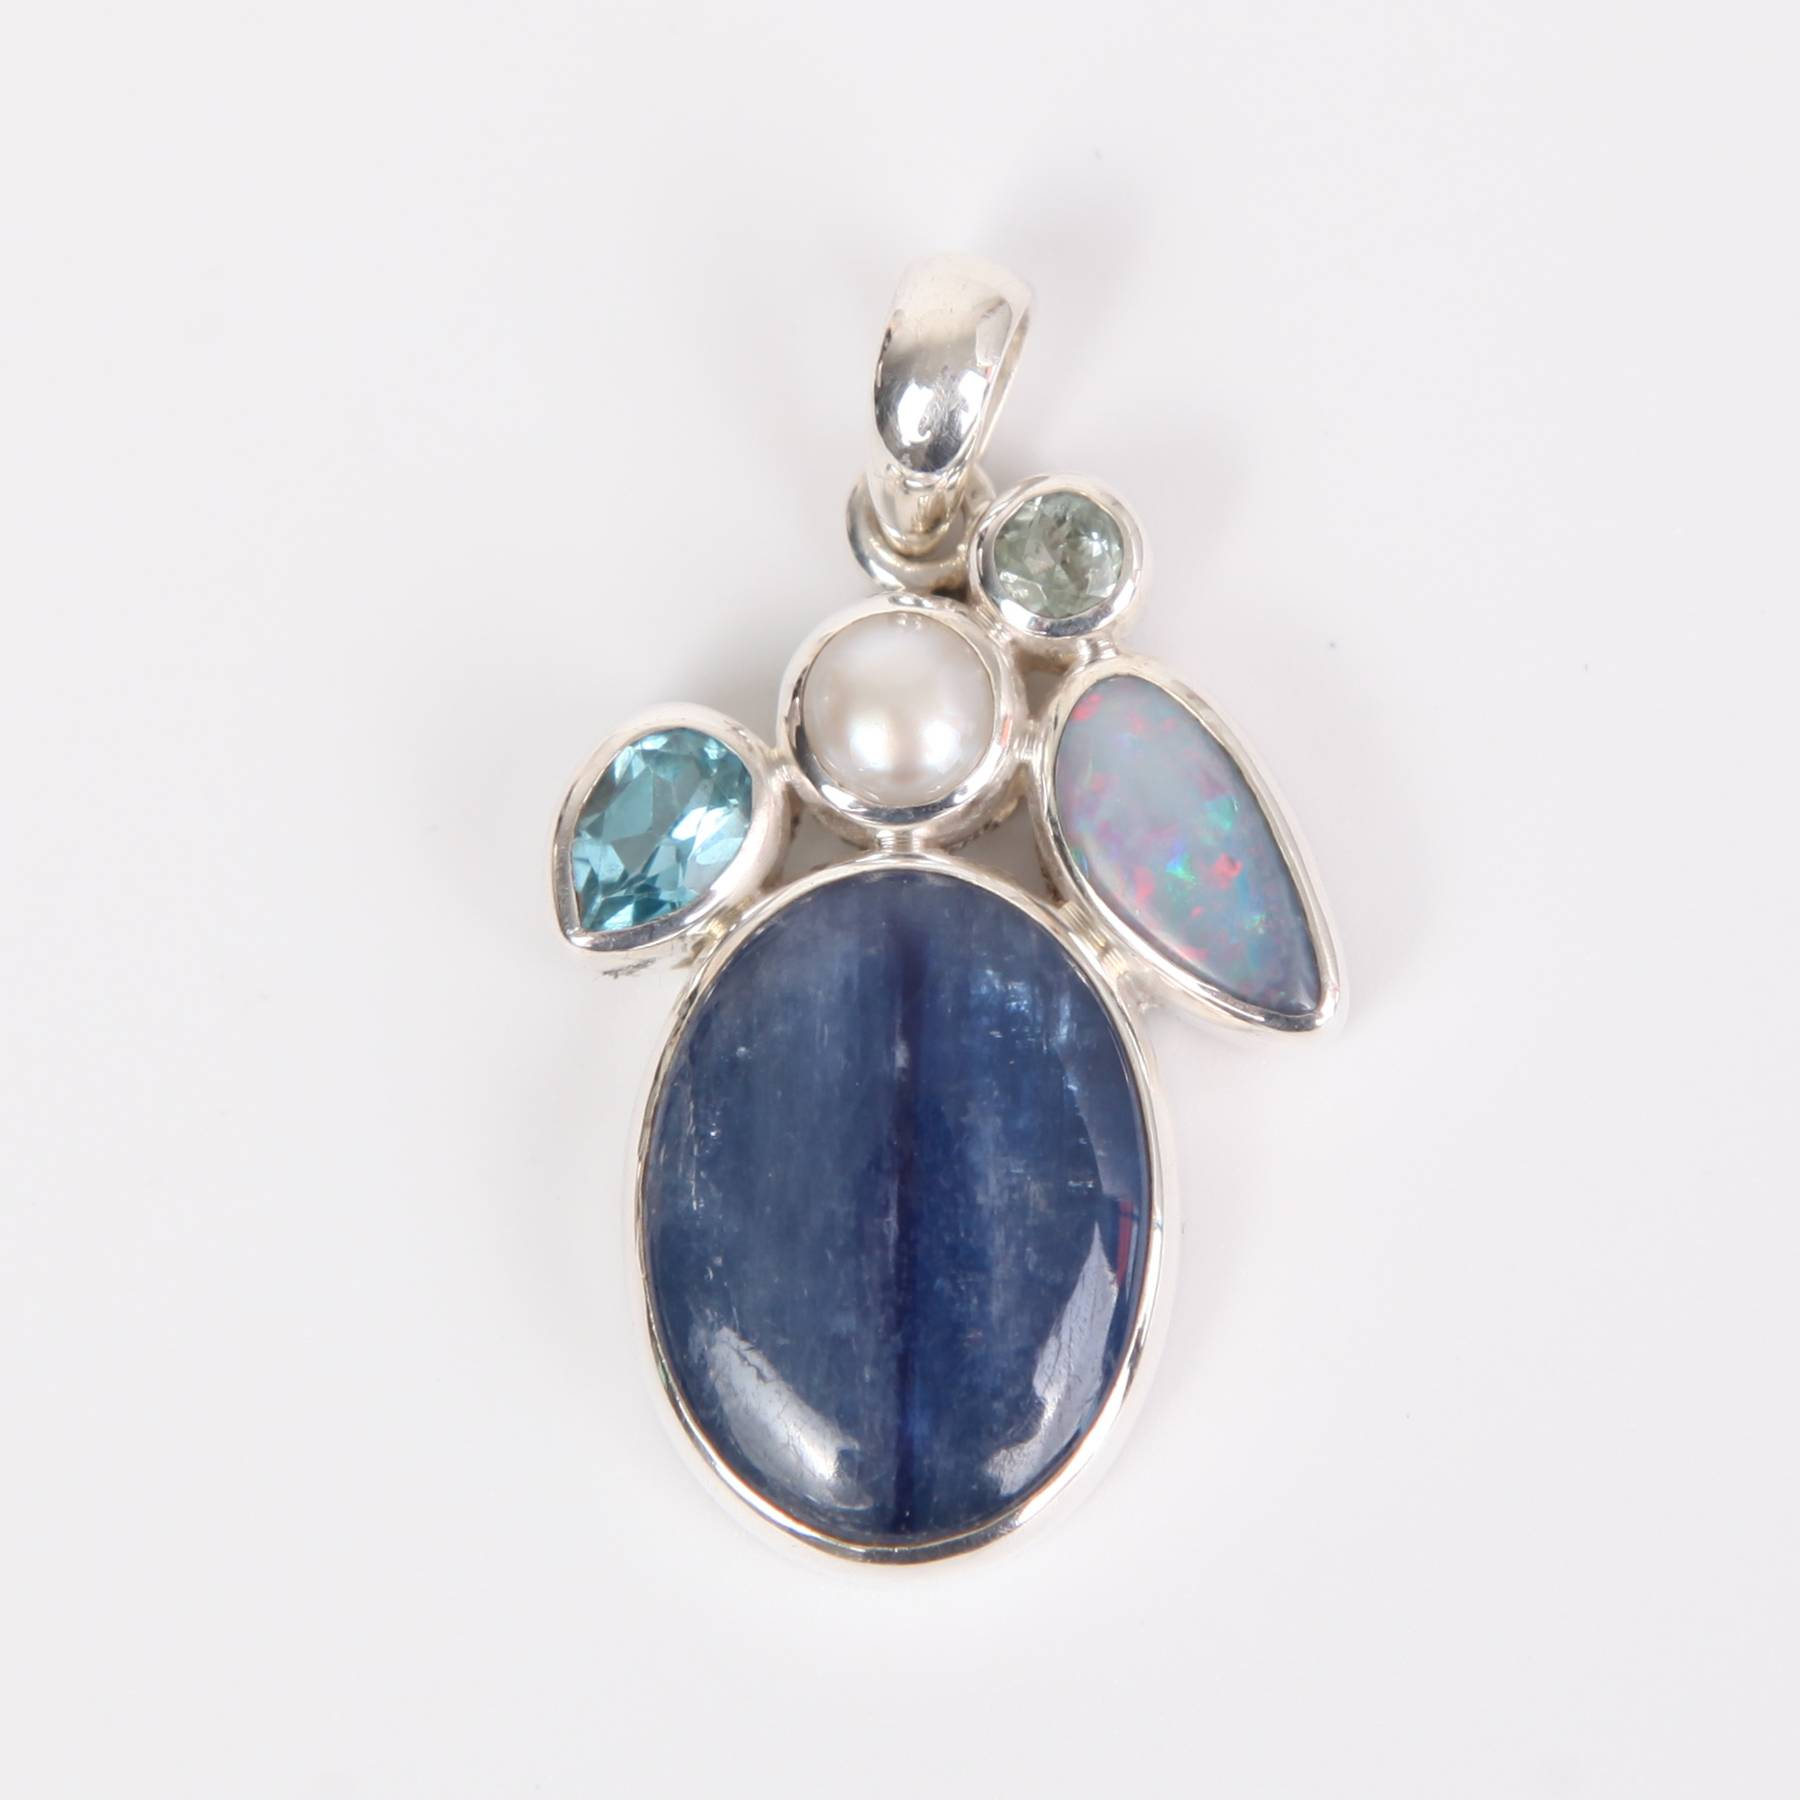 Kyanite Sterling Silver Pendant with Australian Opal, Aquamarine, Blue Topaz and Fresh Water Pearl